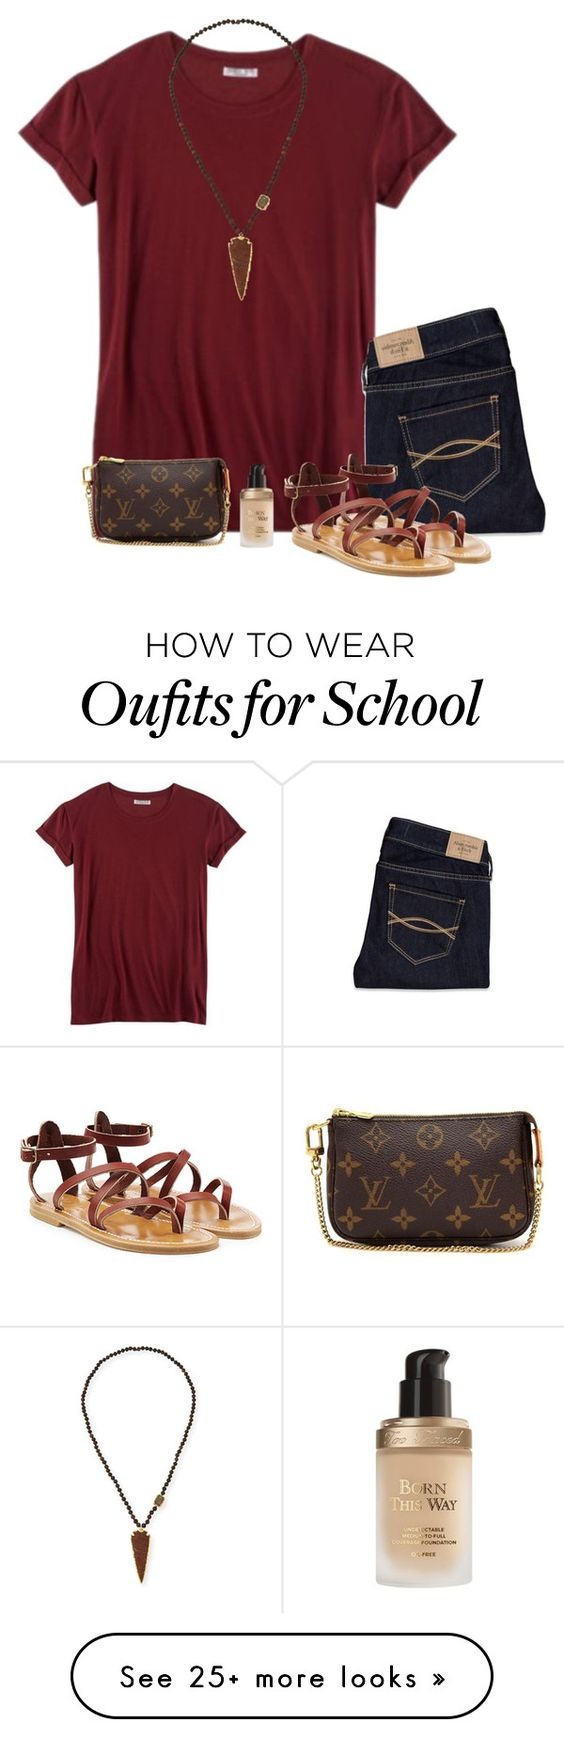 """outfit for school tomorrow"" by lilypackard on Polyvore featuring Hybrid, Abercrombie & Fitch, K. Jacques, NEST Jewelry, Too Faced Cosmetics and Louis Vuitton"